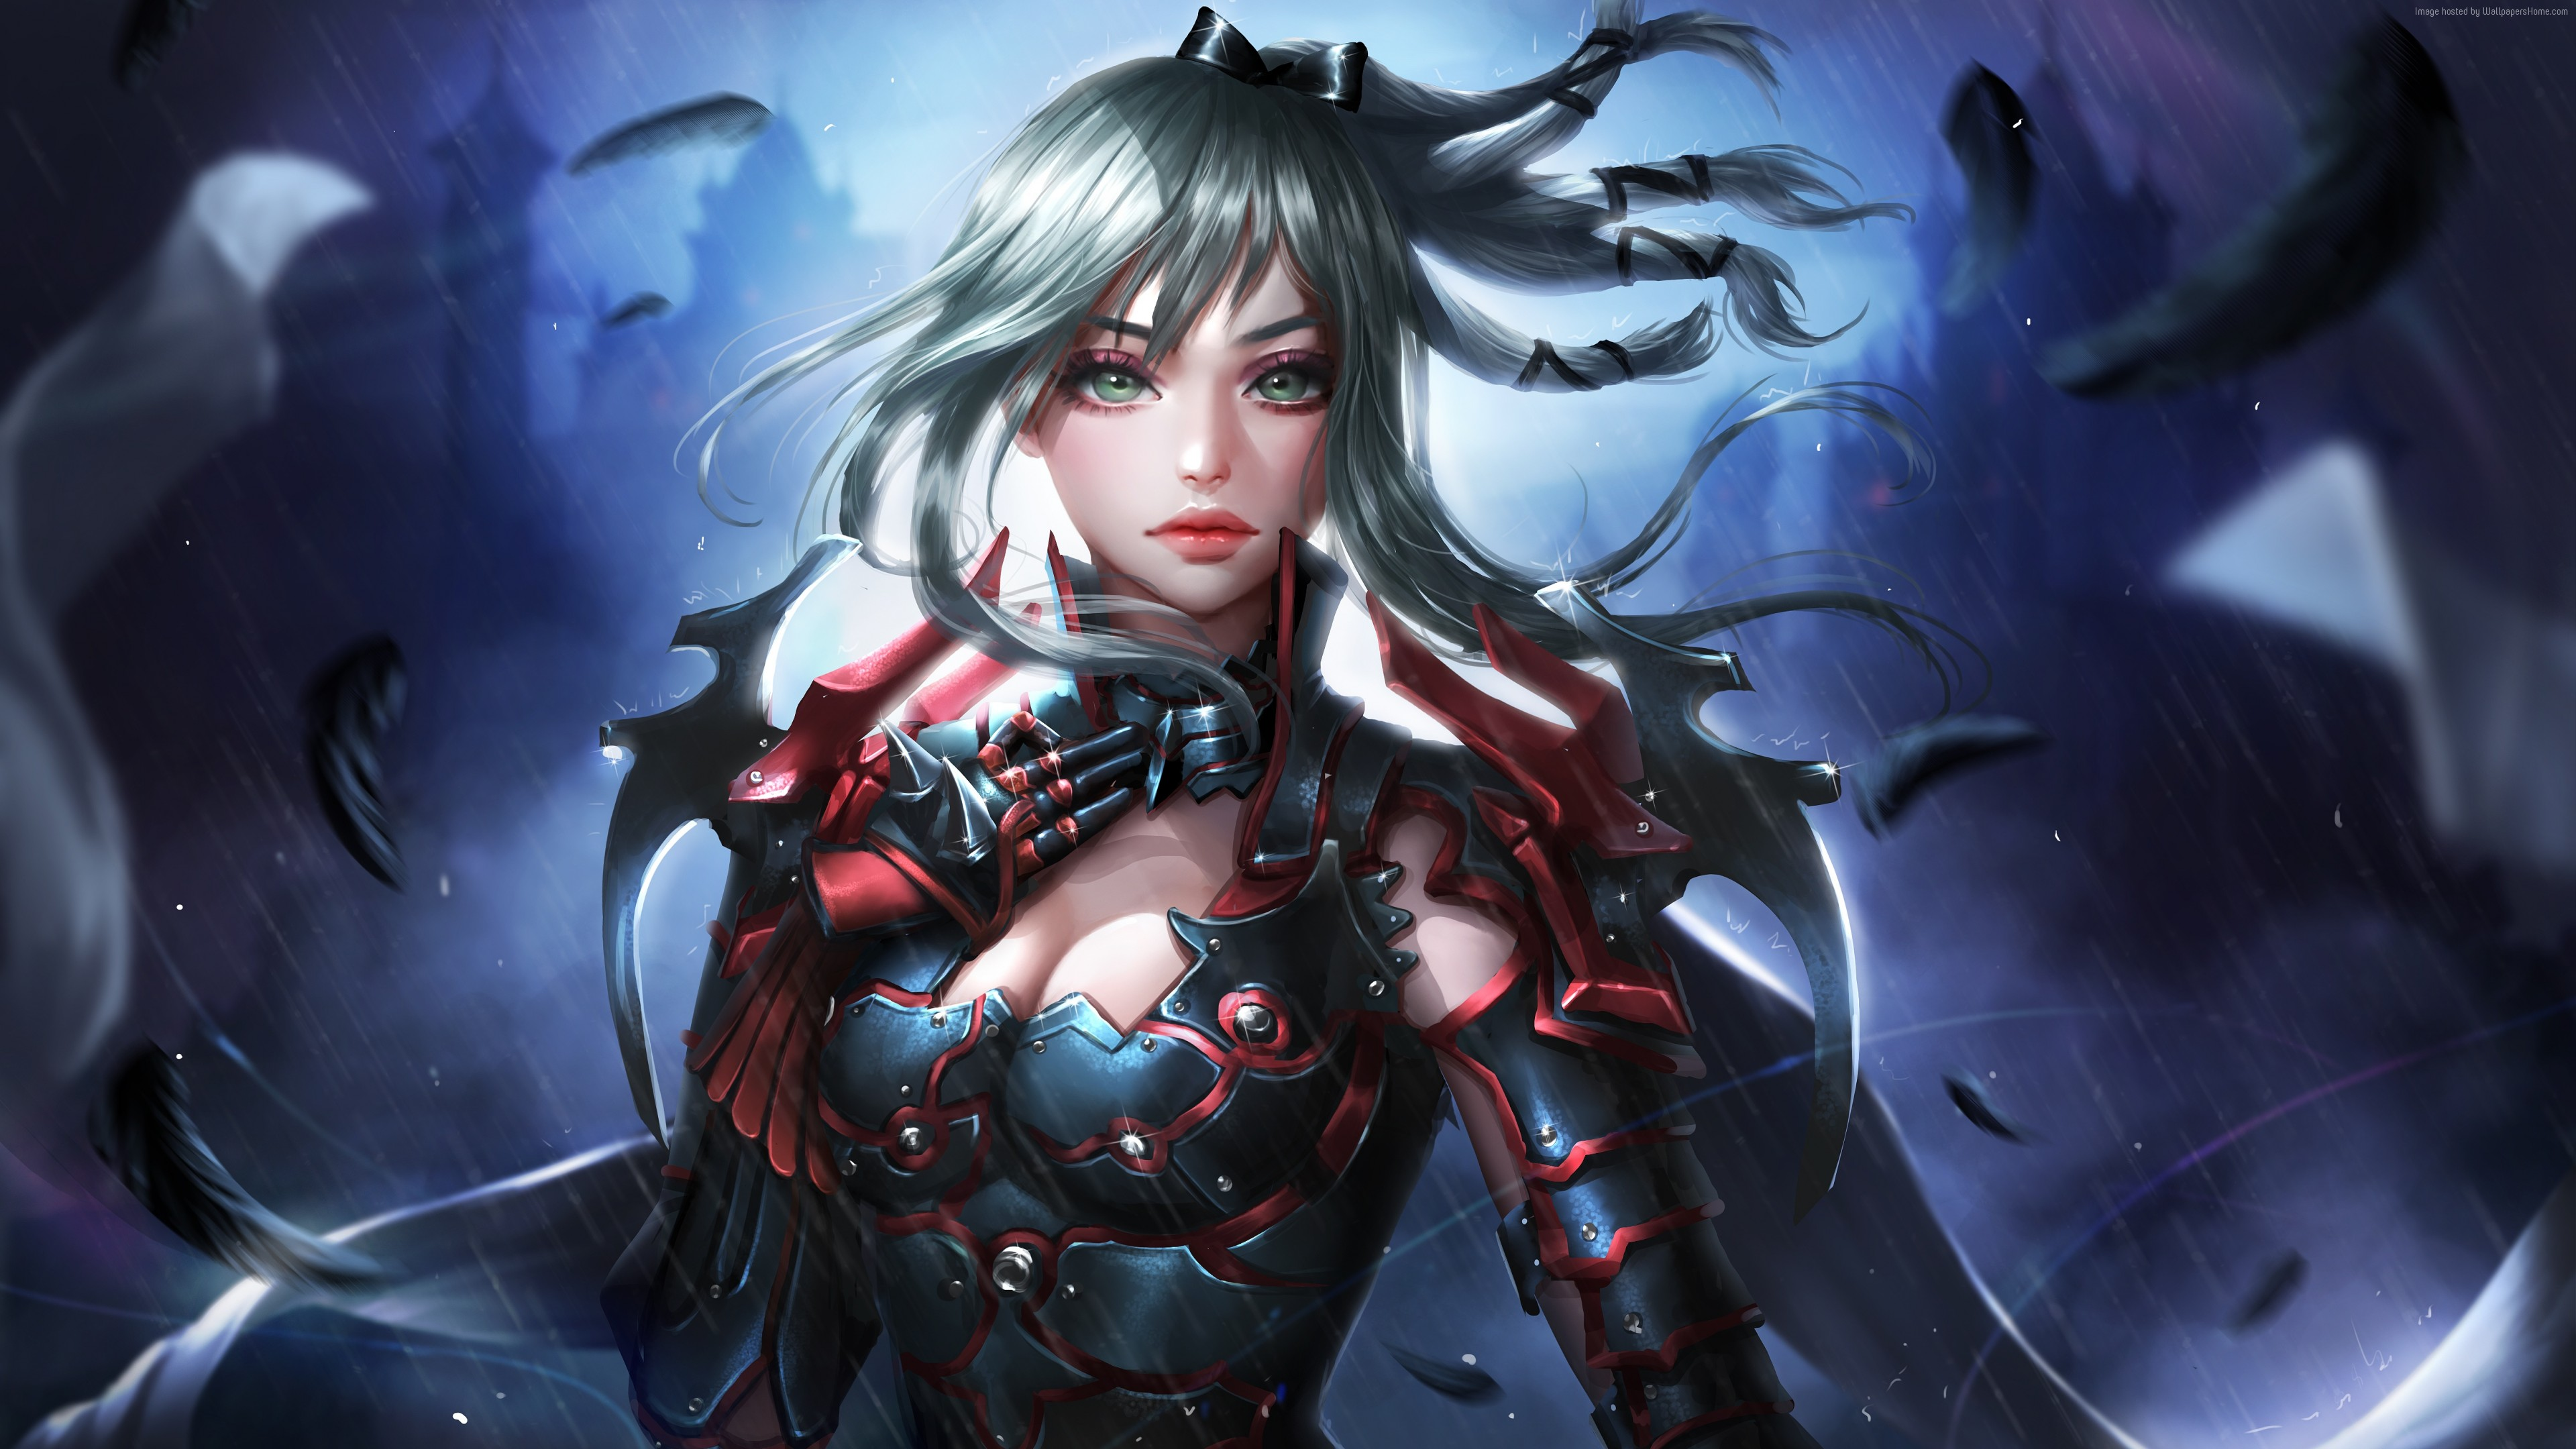 Wallpaper Final Fantasy XV Windows Edition Aranea Highwind 4K 5K Art 4k 5k Download